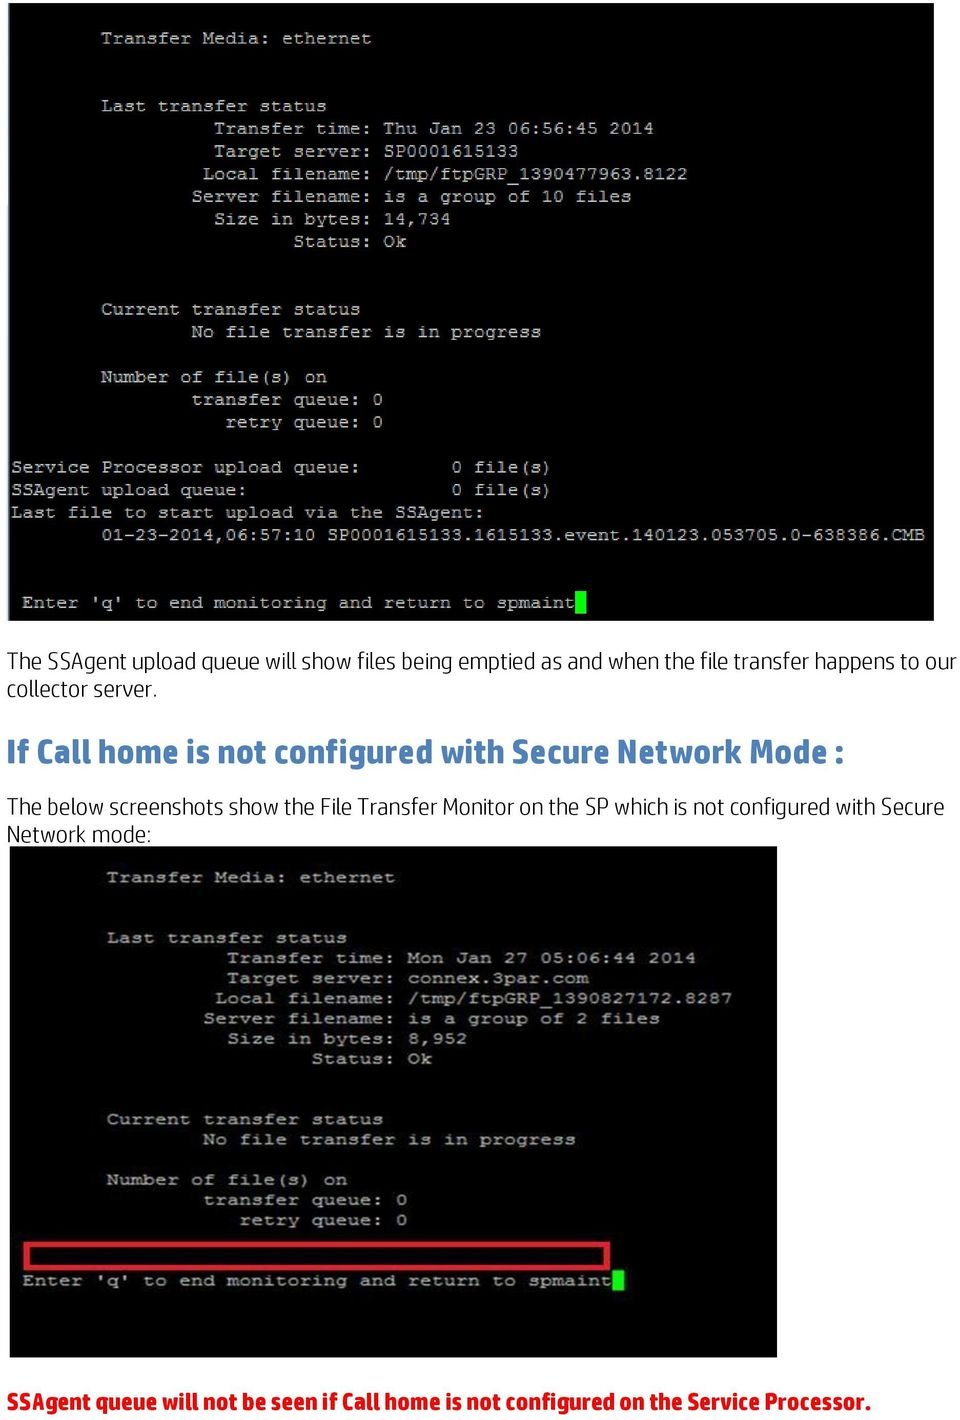 If Call home is not configured with Secure Network Mode : The below screenshots show the File